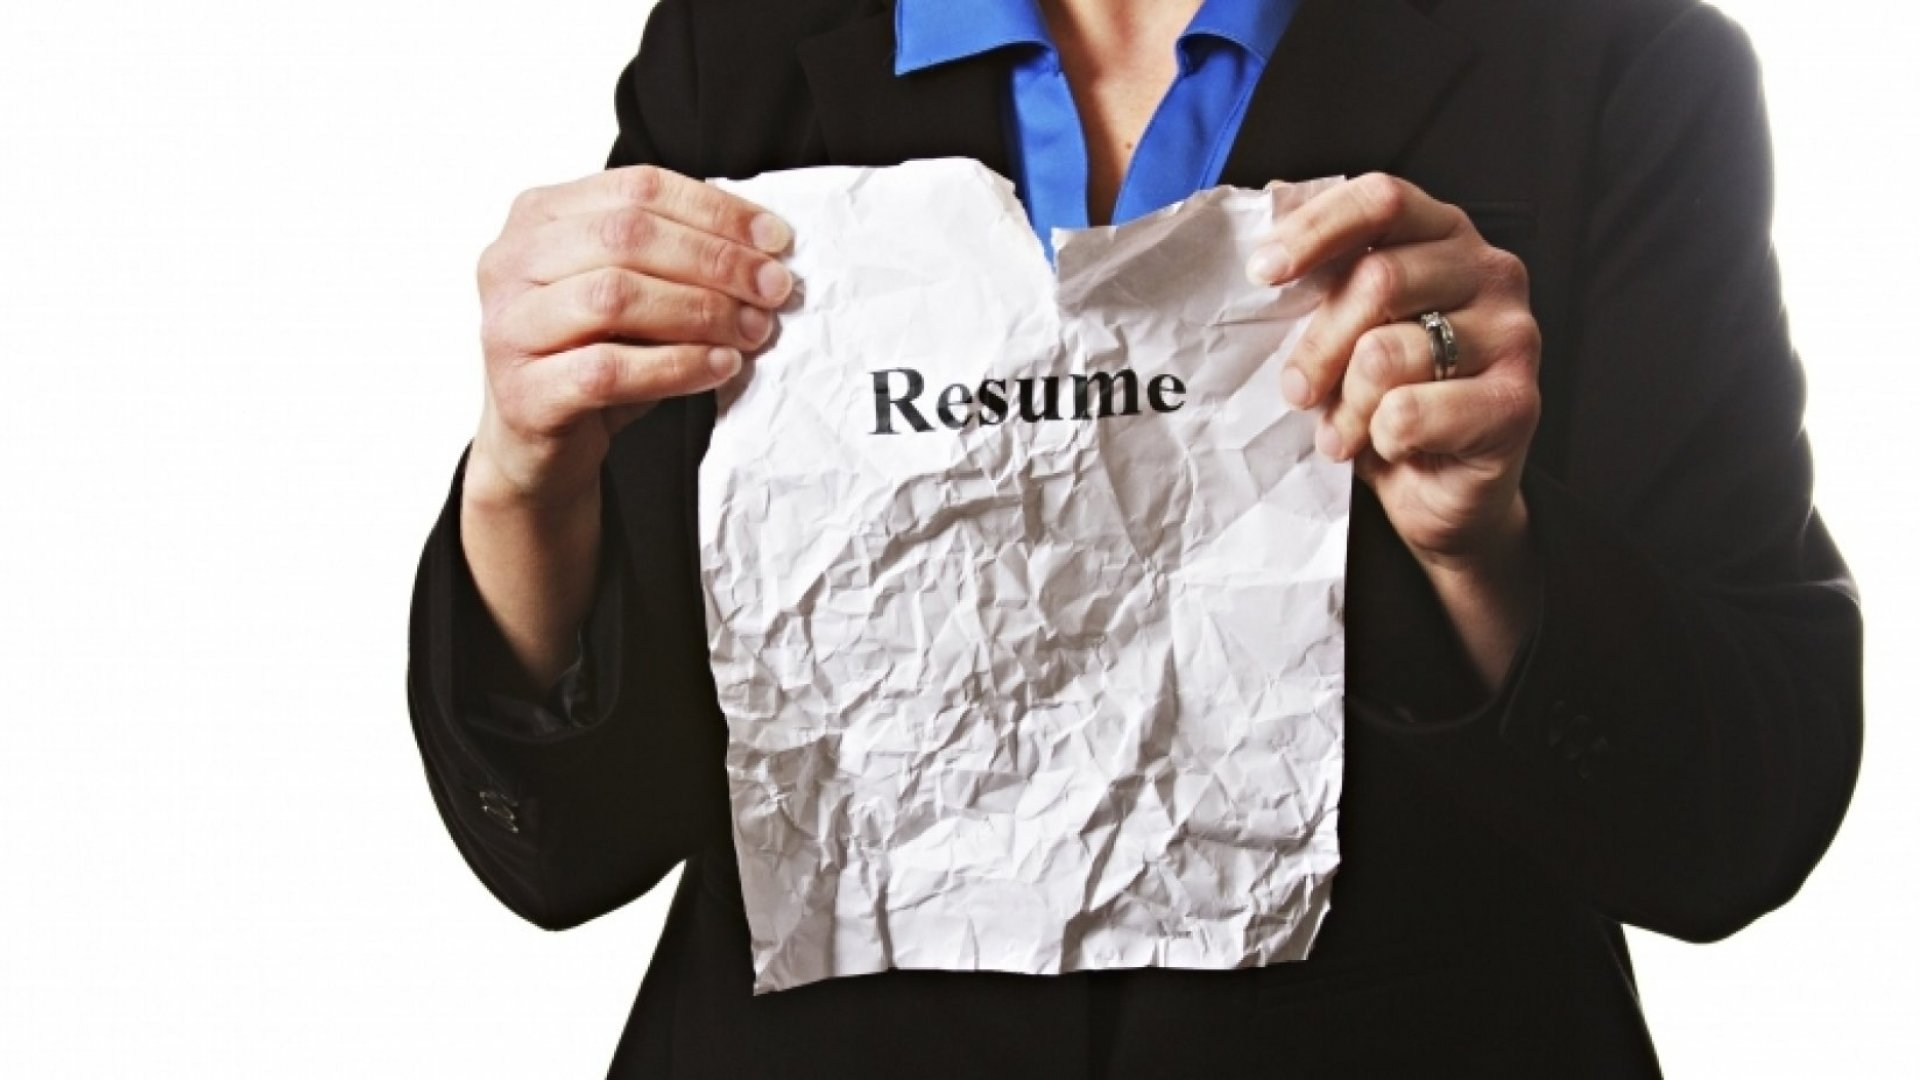 When No Resumes Makes for Better Hiring